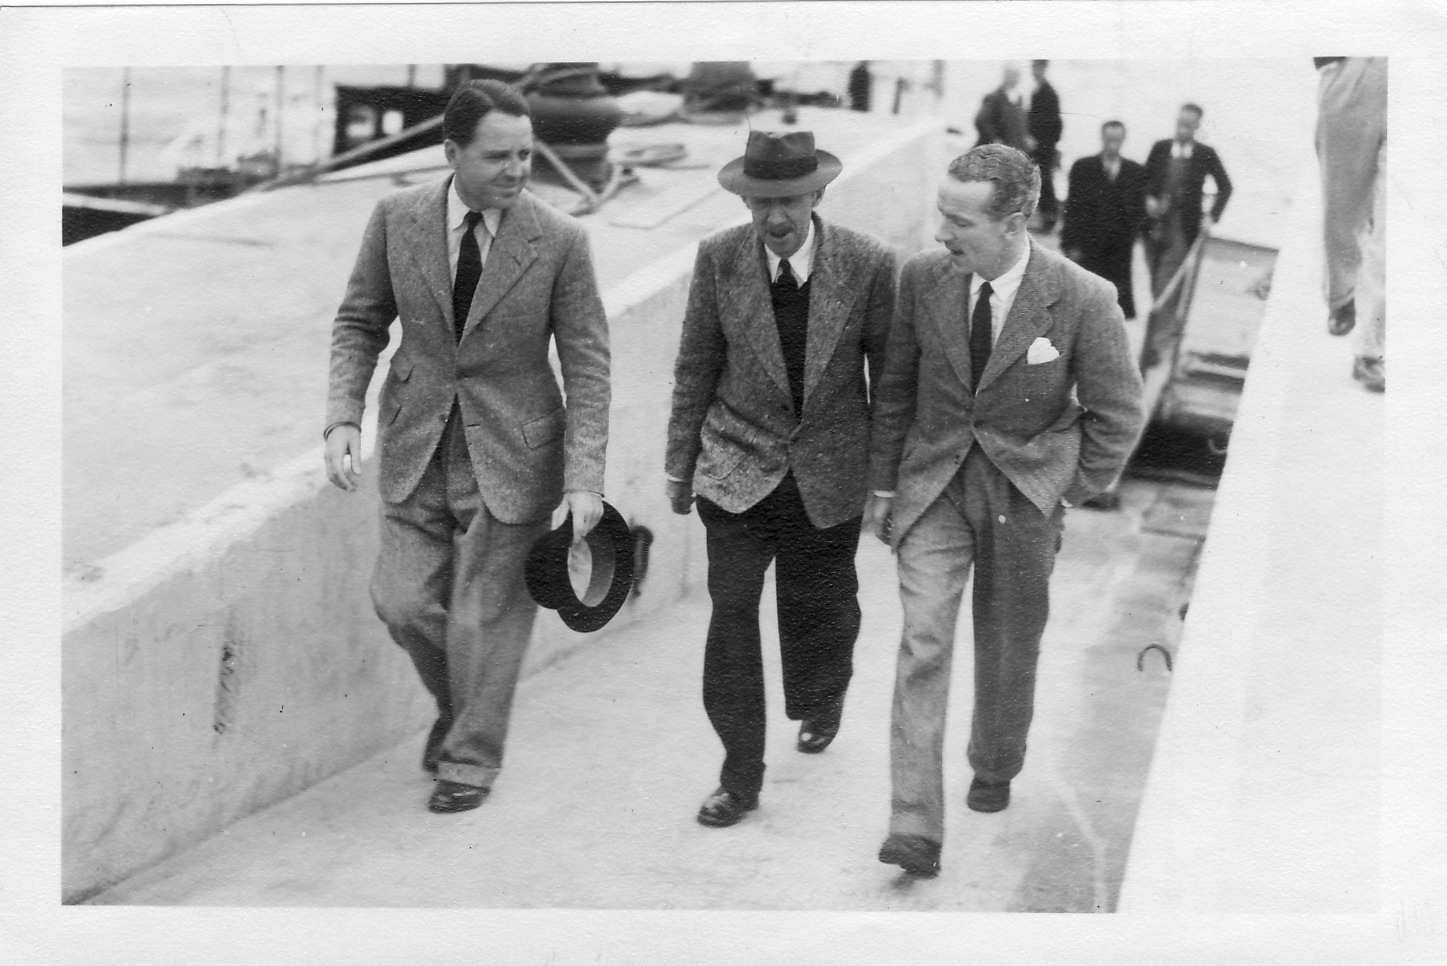 Colonial Secretary MacDougall (right) returns from a trip, greeted by Max and DCA Albert Moss, January 1947